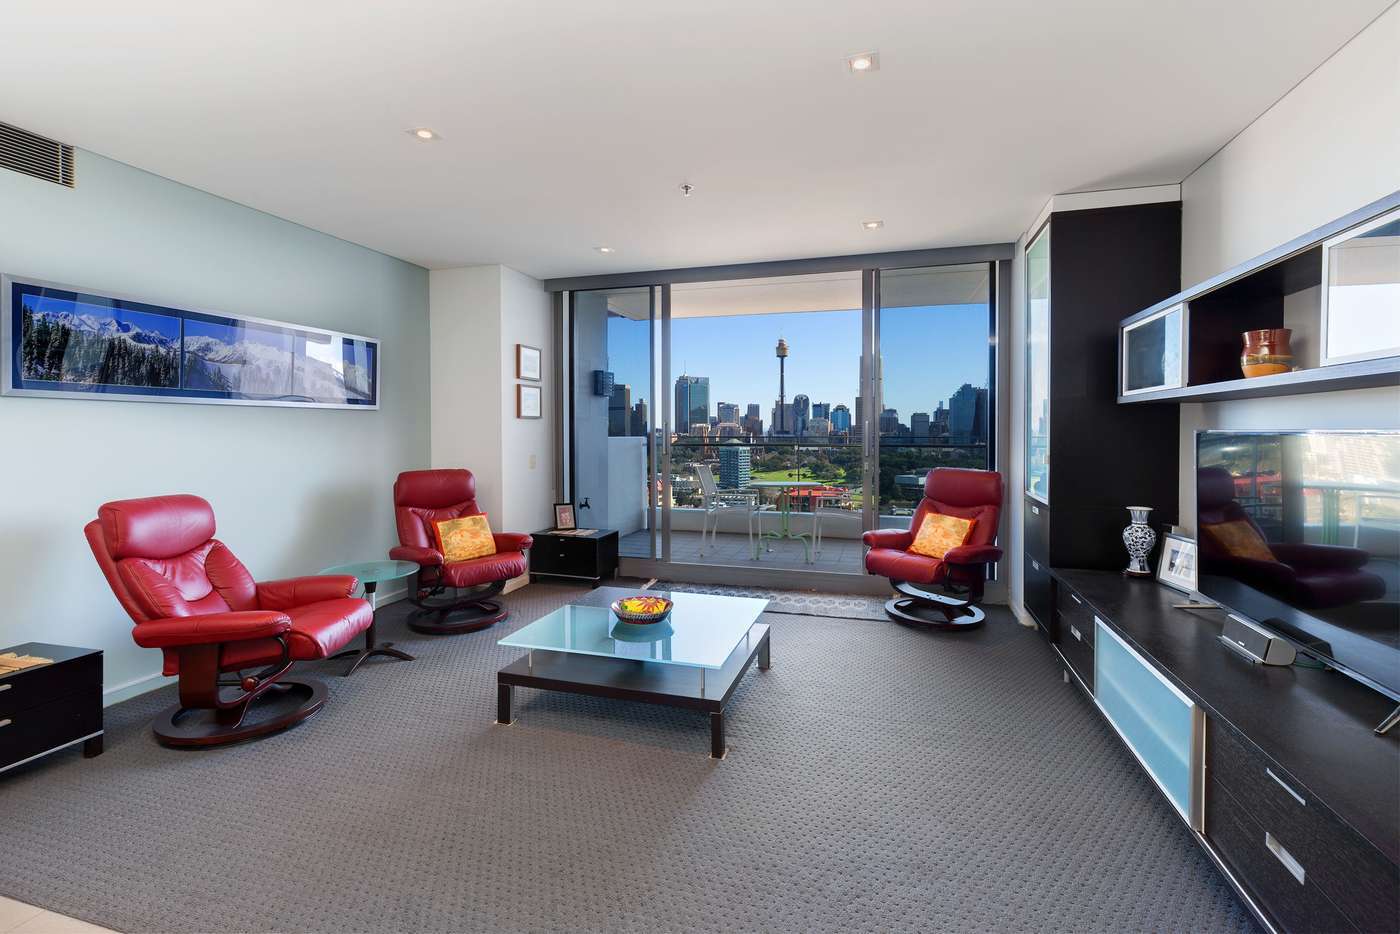 Main view of Homely apartment listing, 1509/81 Macleay Street, Potts Point NSW 2011